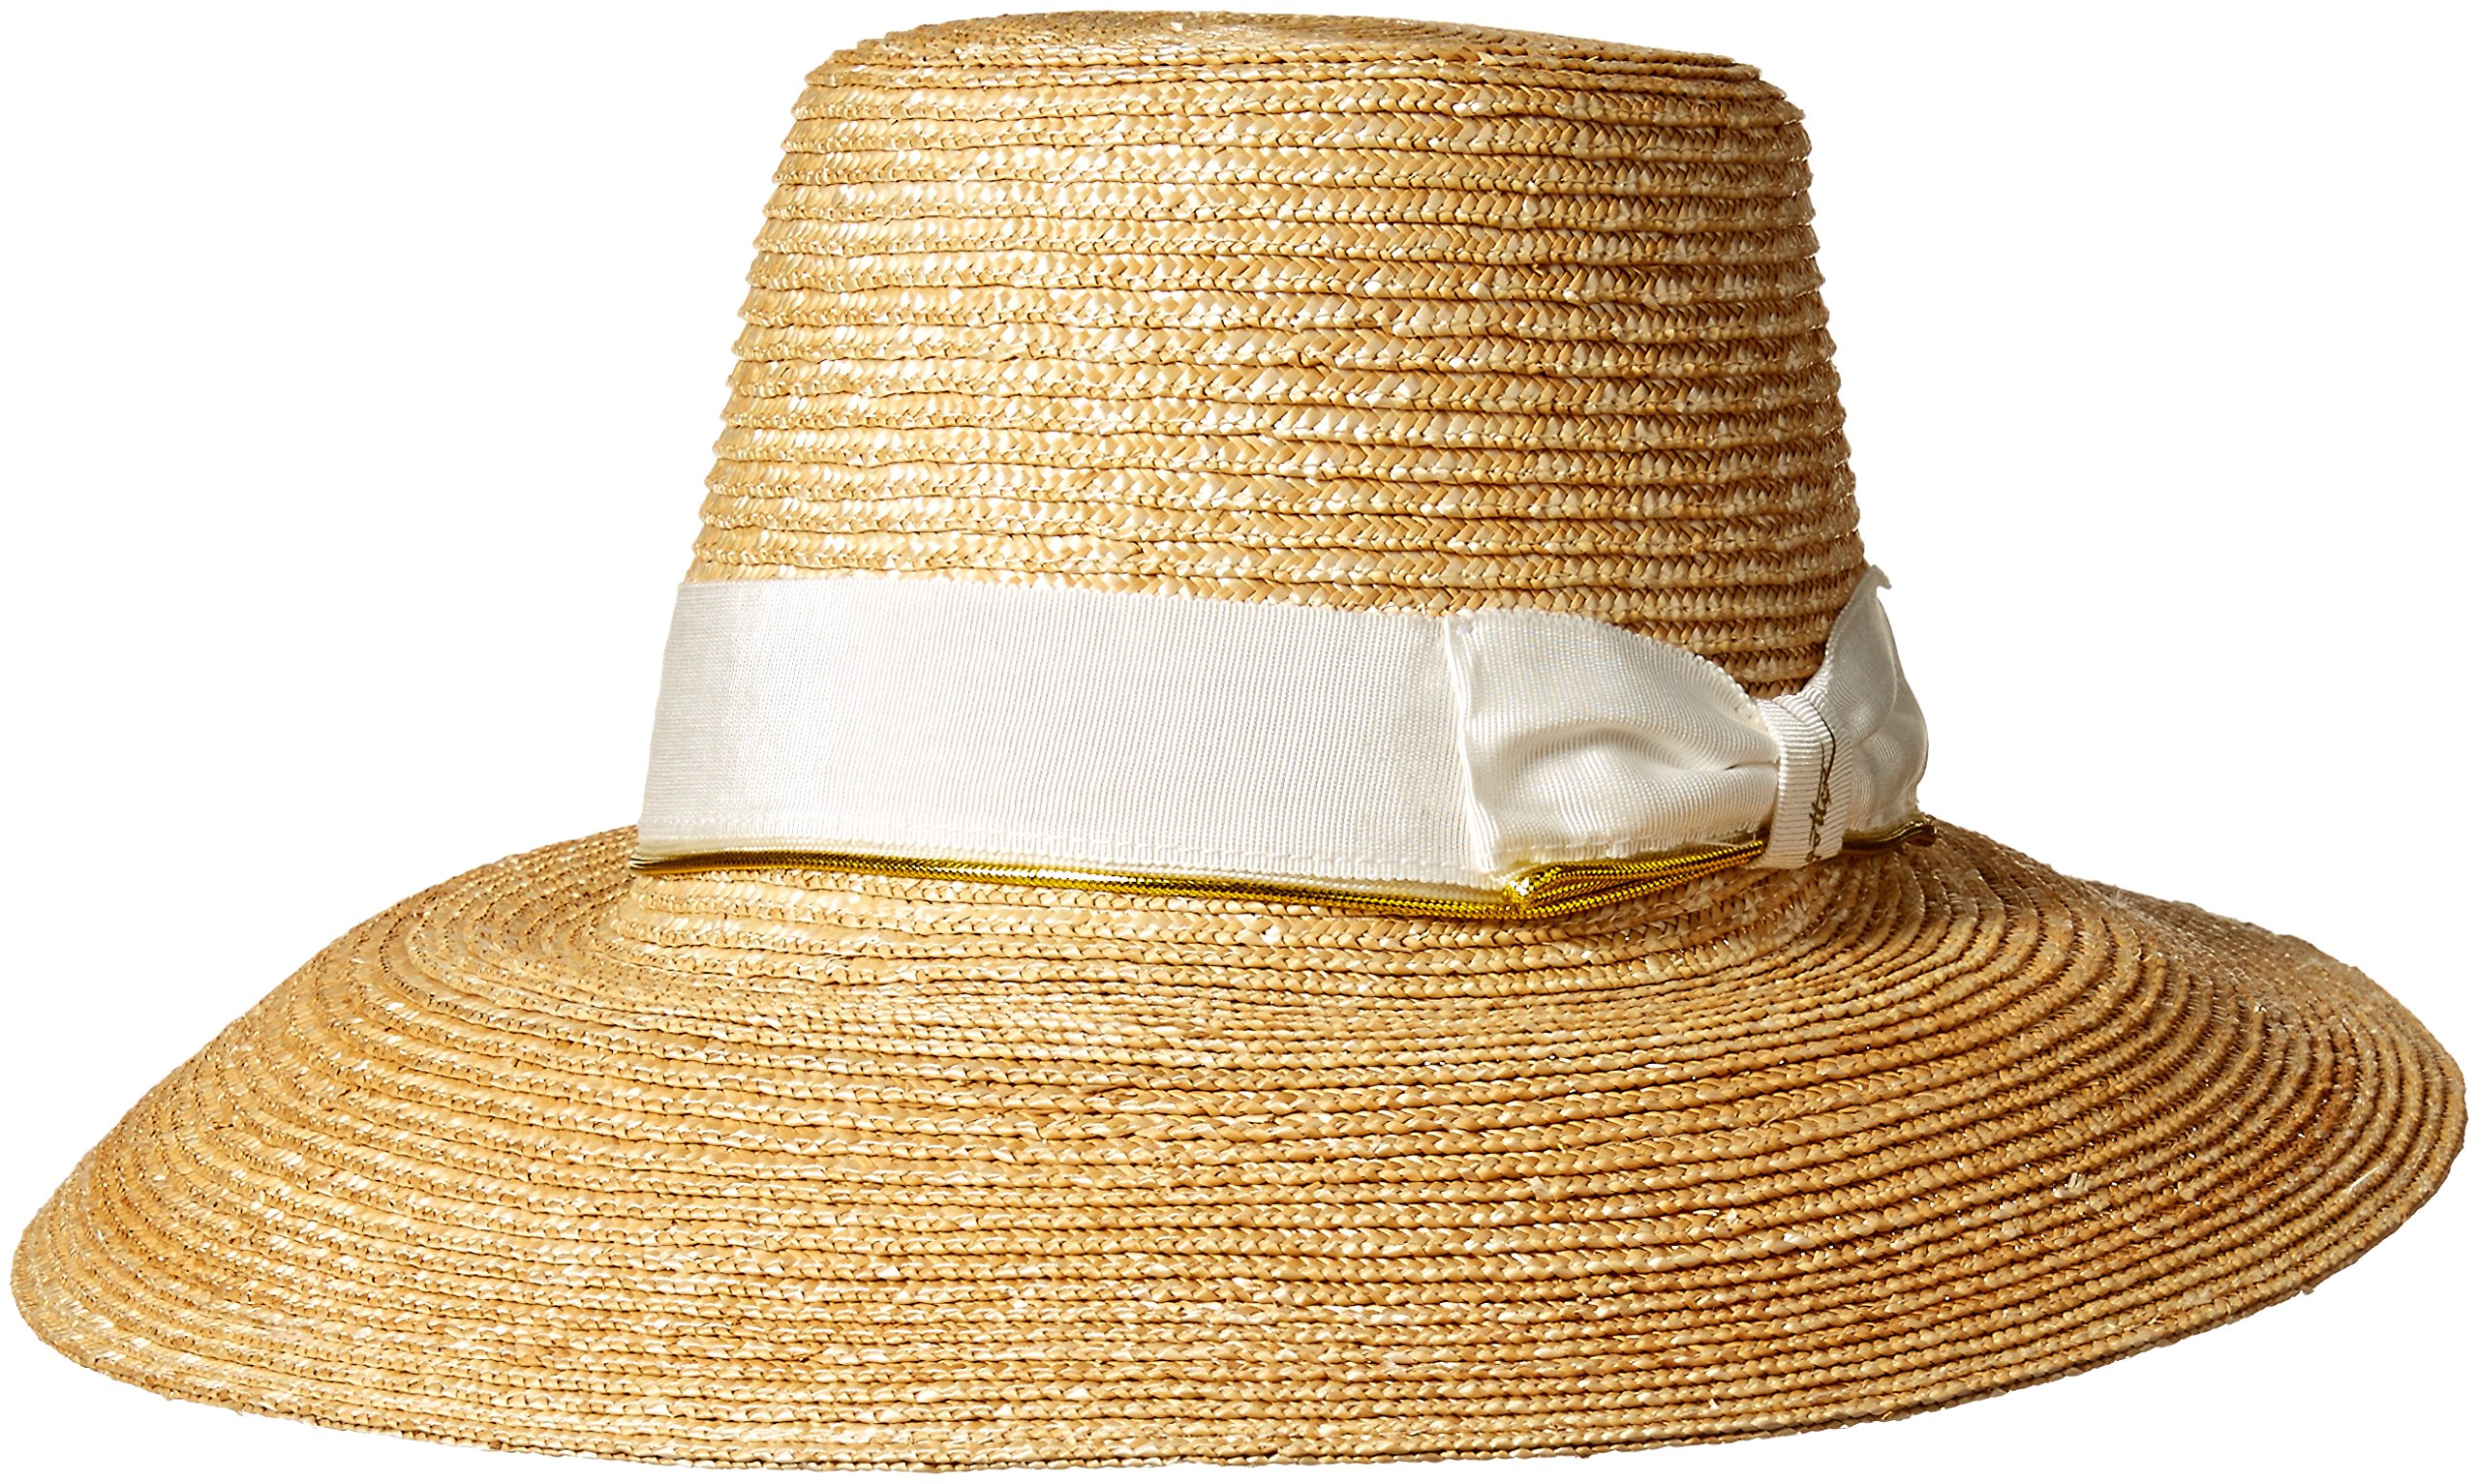 Gottex Women's Layla Fine Milan Sunhat Packable, Adjustable and UPF Rated, Natural/White, One Size